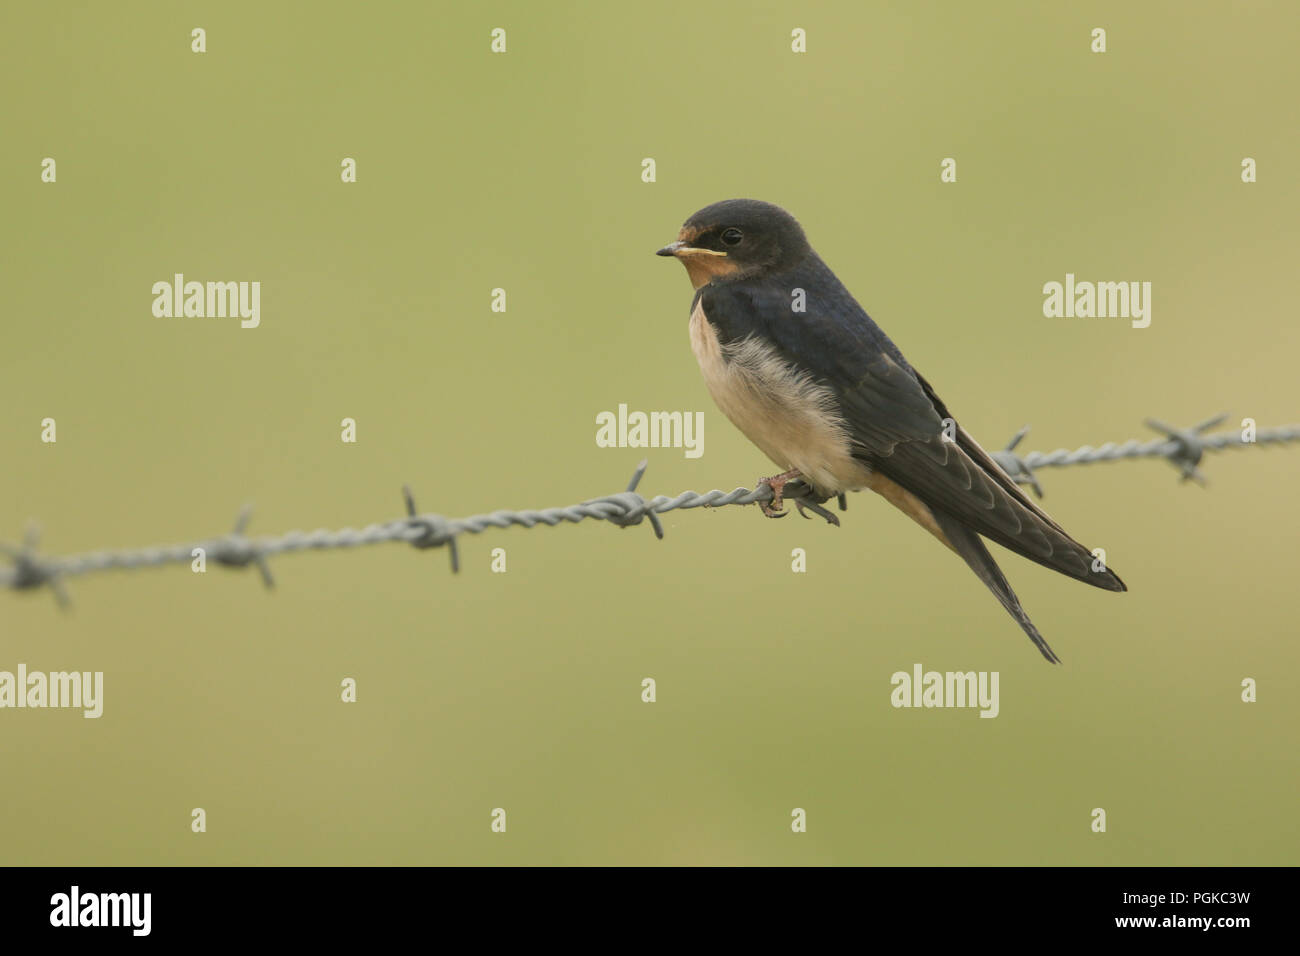 A beautiful Swallow (Hirundo rustica) perching on a barbed wire fence. - Stock Image